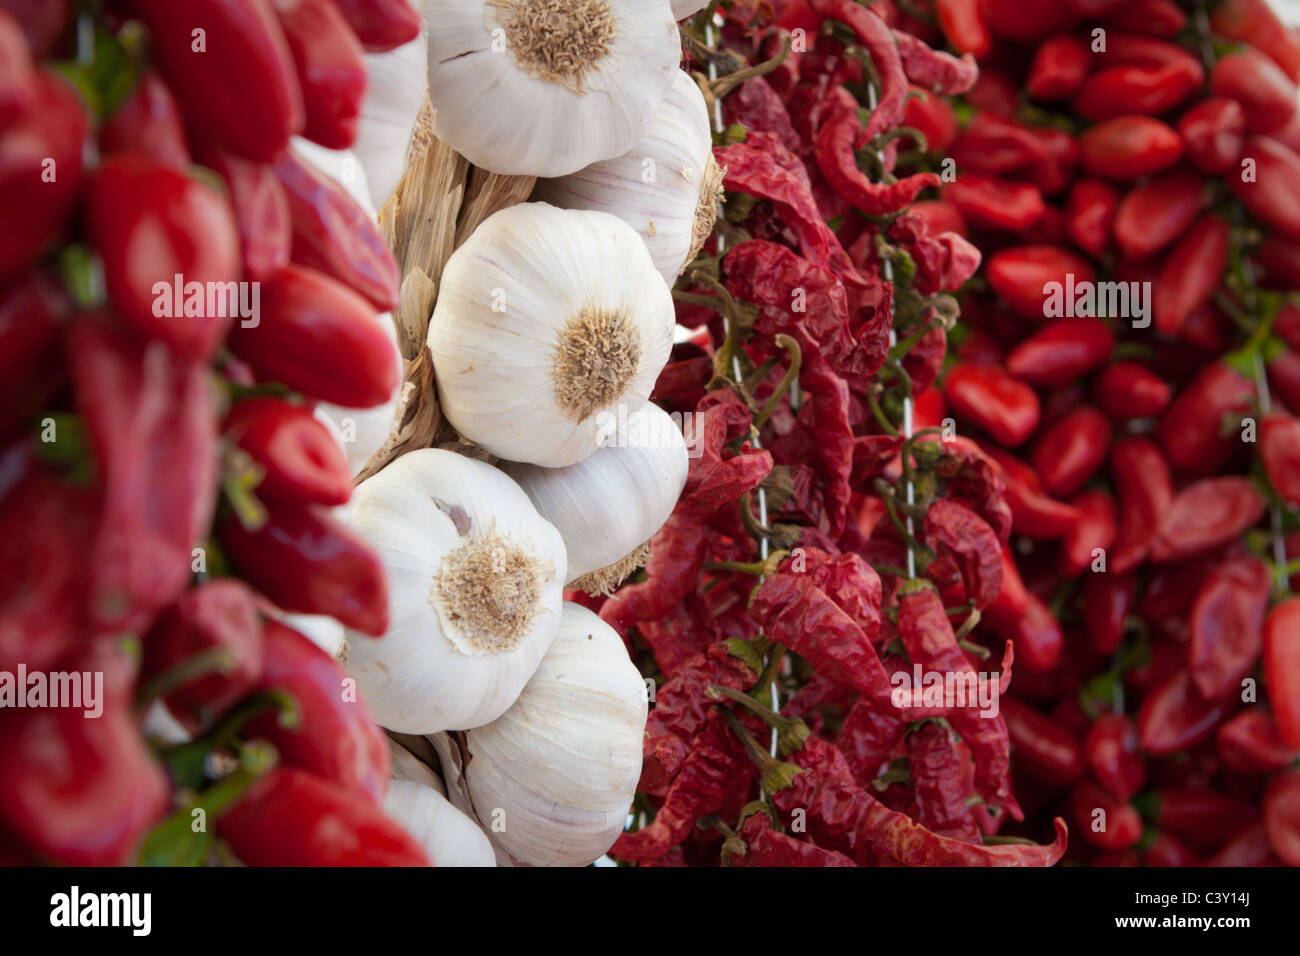 Peppers and garlic in market display - Stock Image